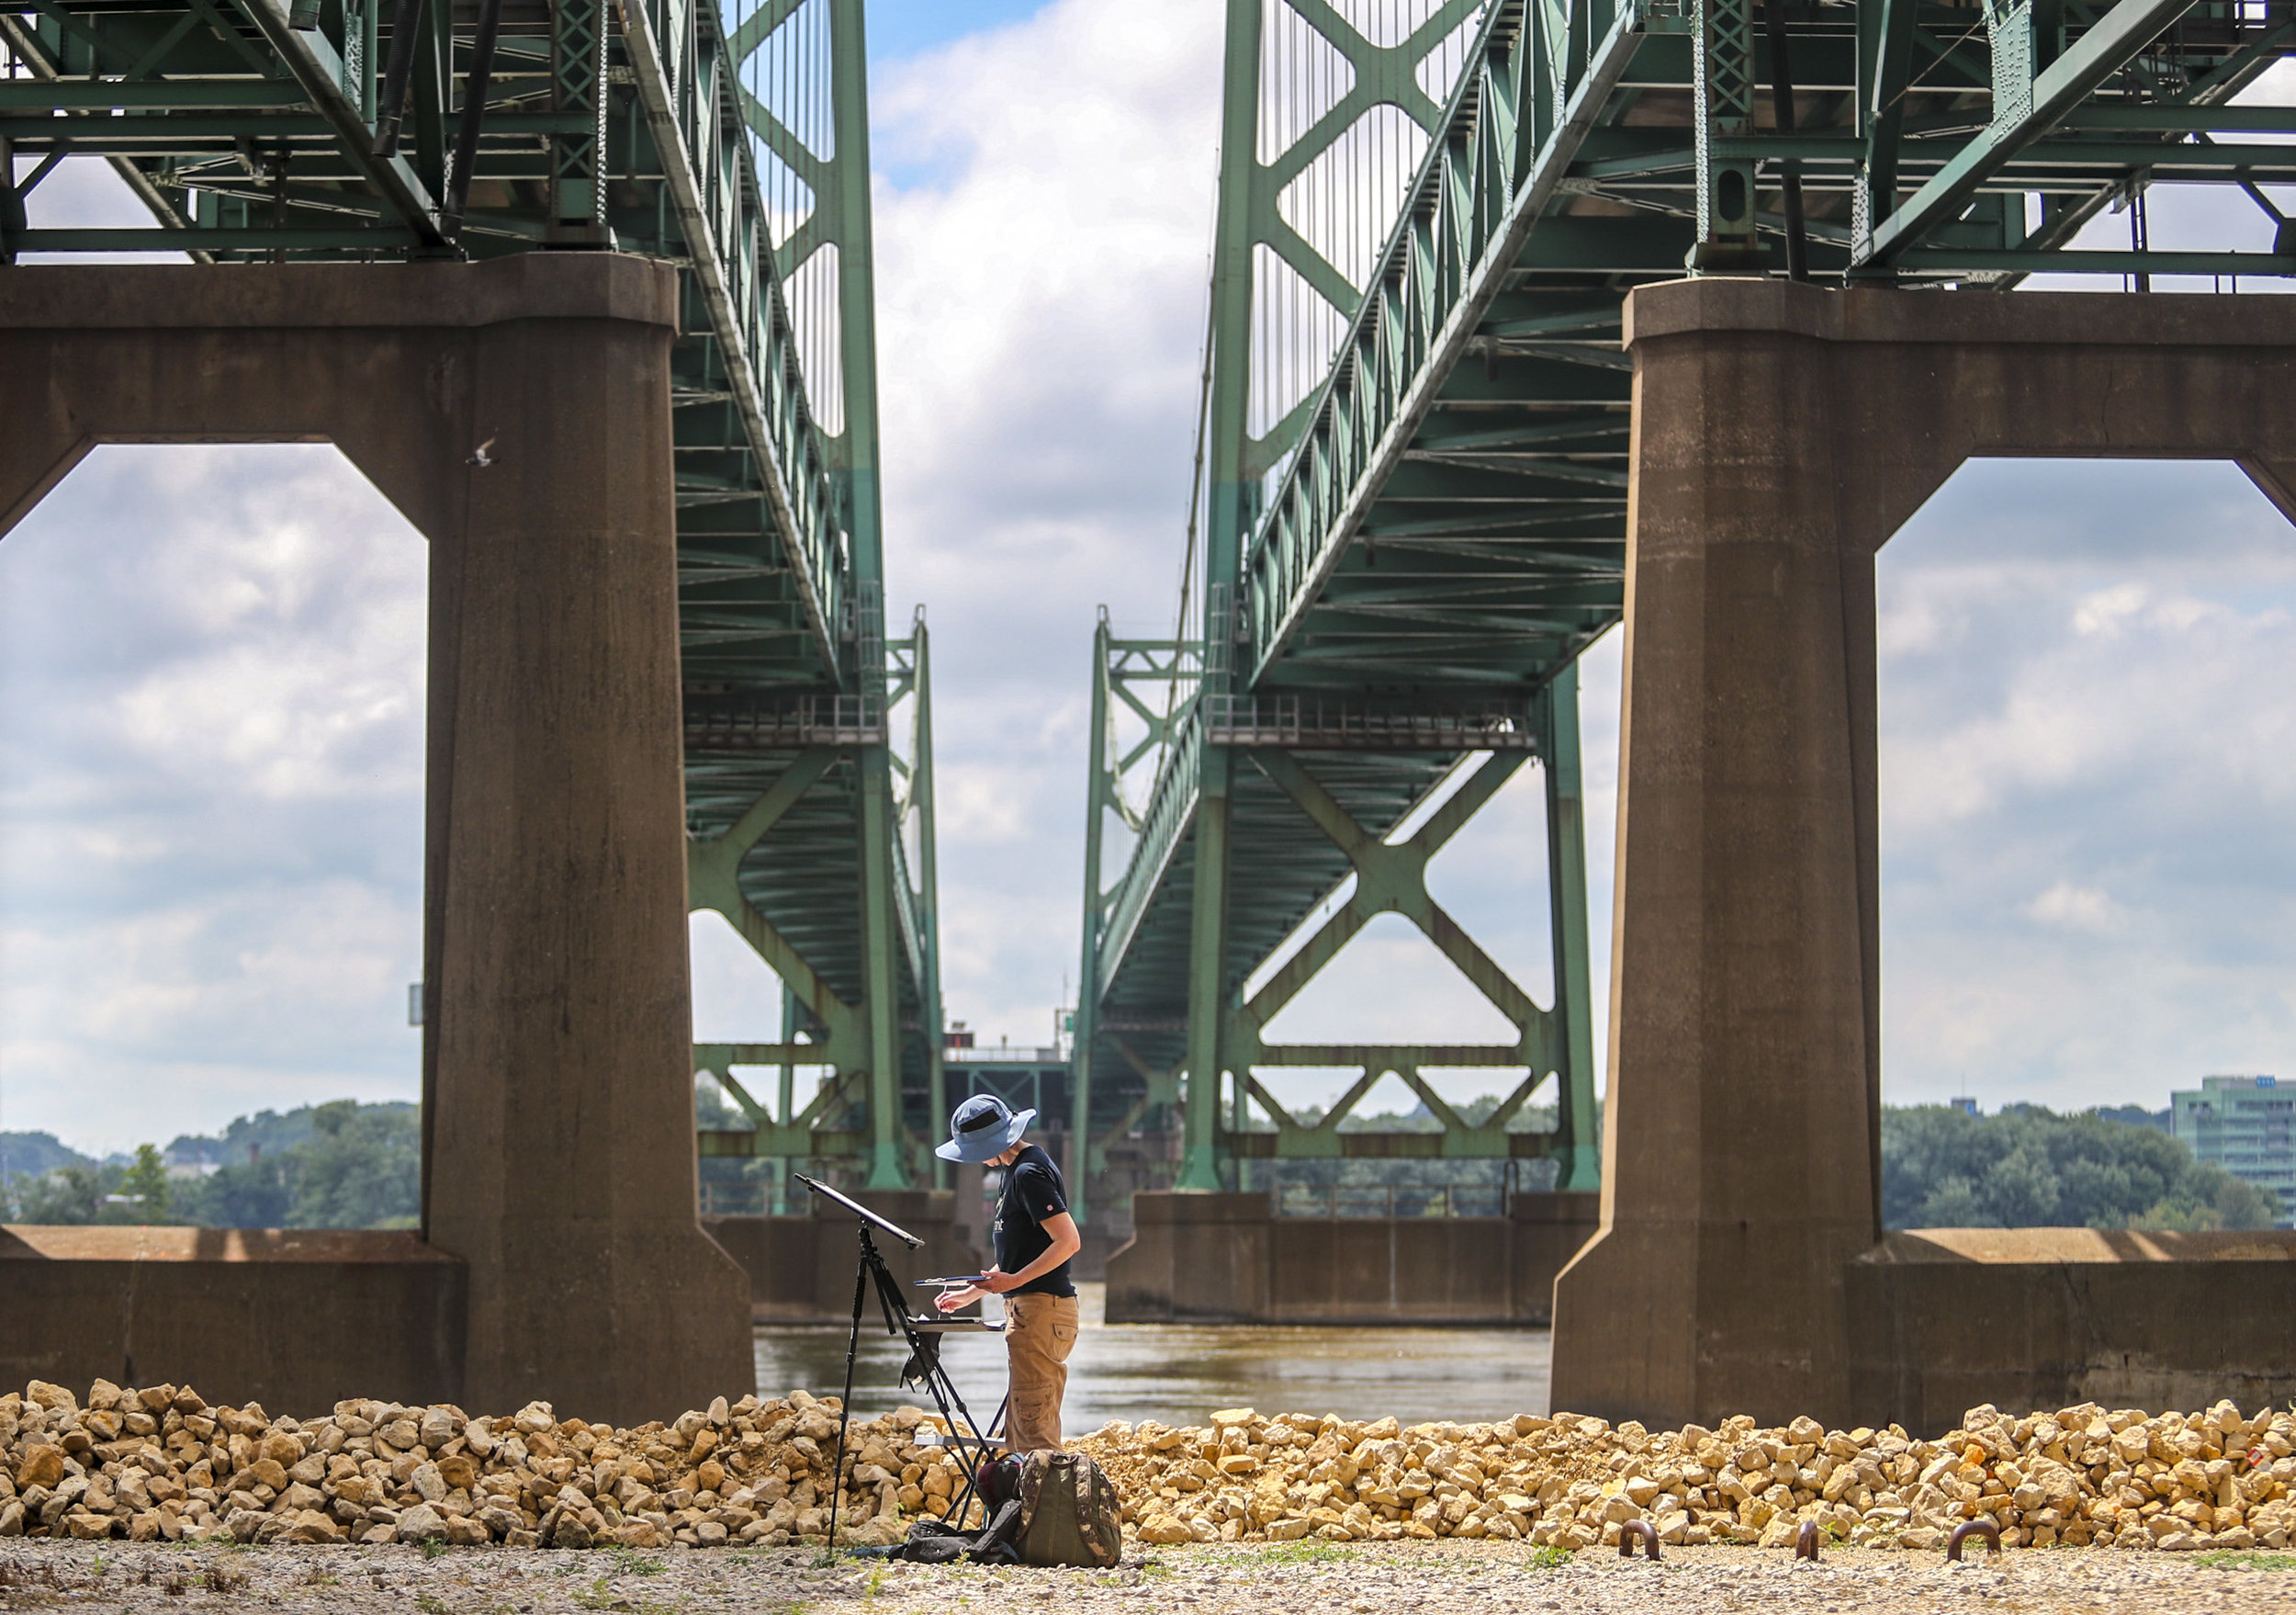 """Victoria Fosmo of Cedar Rapids works on her painting under the Interstate 74 bridge in Bettendorf, Saturday, July 21, 2018. Beréskin Fine Art Gallery and Art Academy hosted the second annual """"Plein Air Paint Out"""" event inviting around 30 artists to come out and paint on the bike path between Leach Park and the gallery at 2967 State Street between 8 a.m. and 4 p.m. before a showcase of the finished art at the gallery in the evening."""